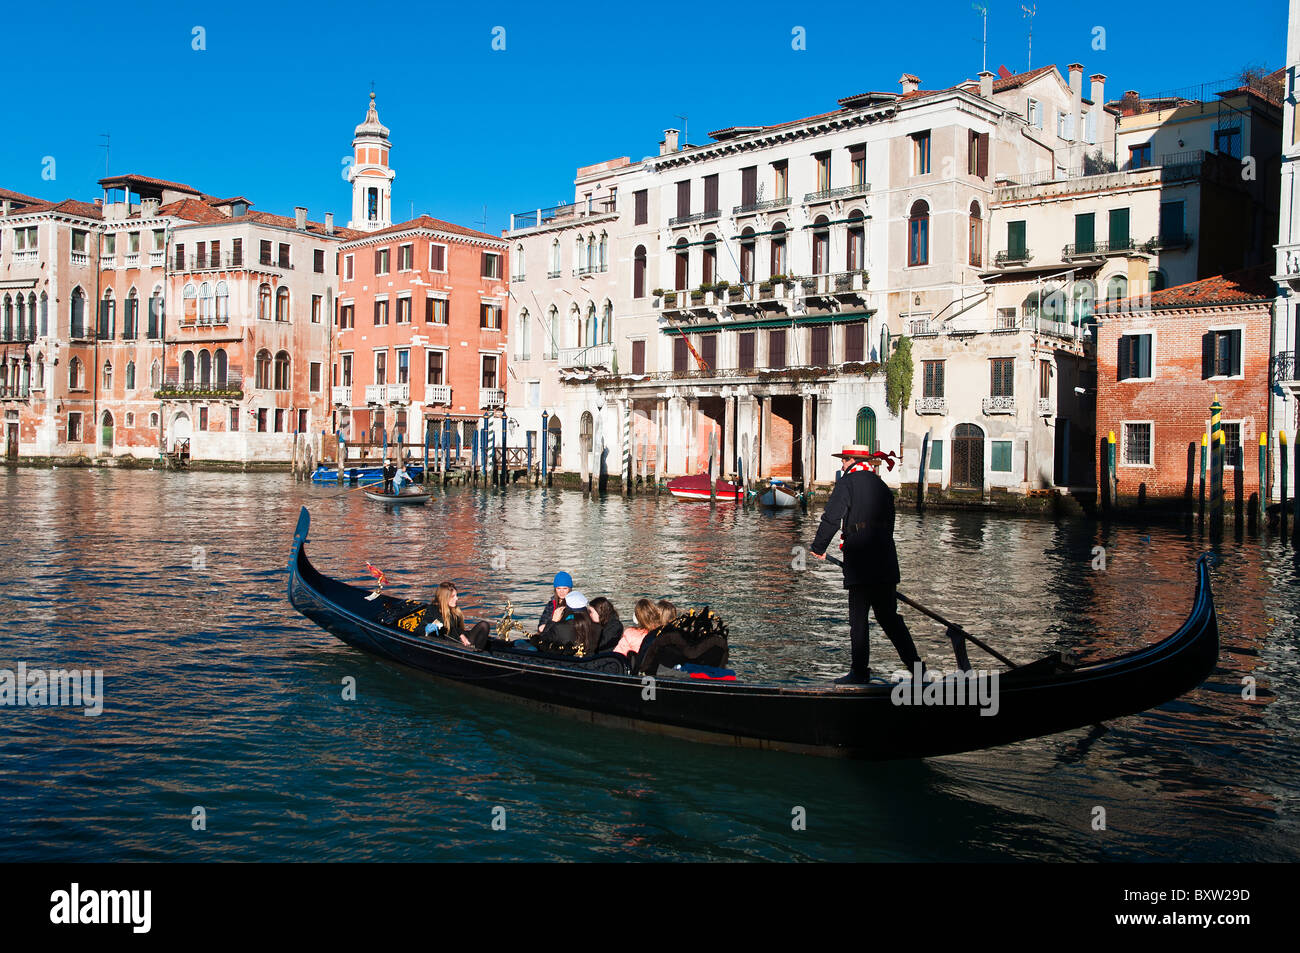 Gondola and gondolier with tourists on Grand Canal (Canal Grande), Venice, Italy - Stock Image